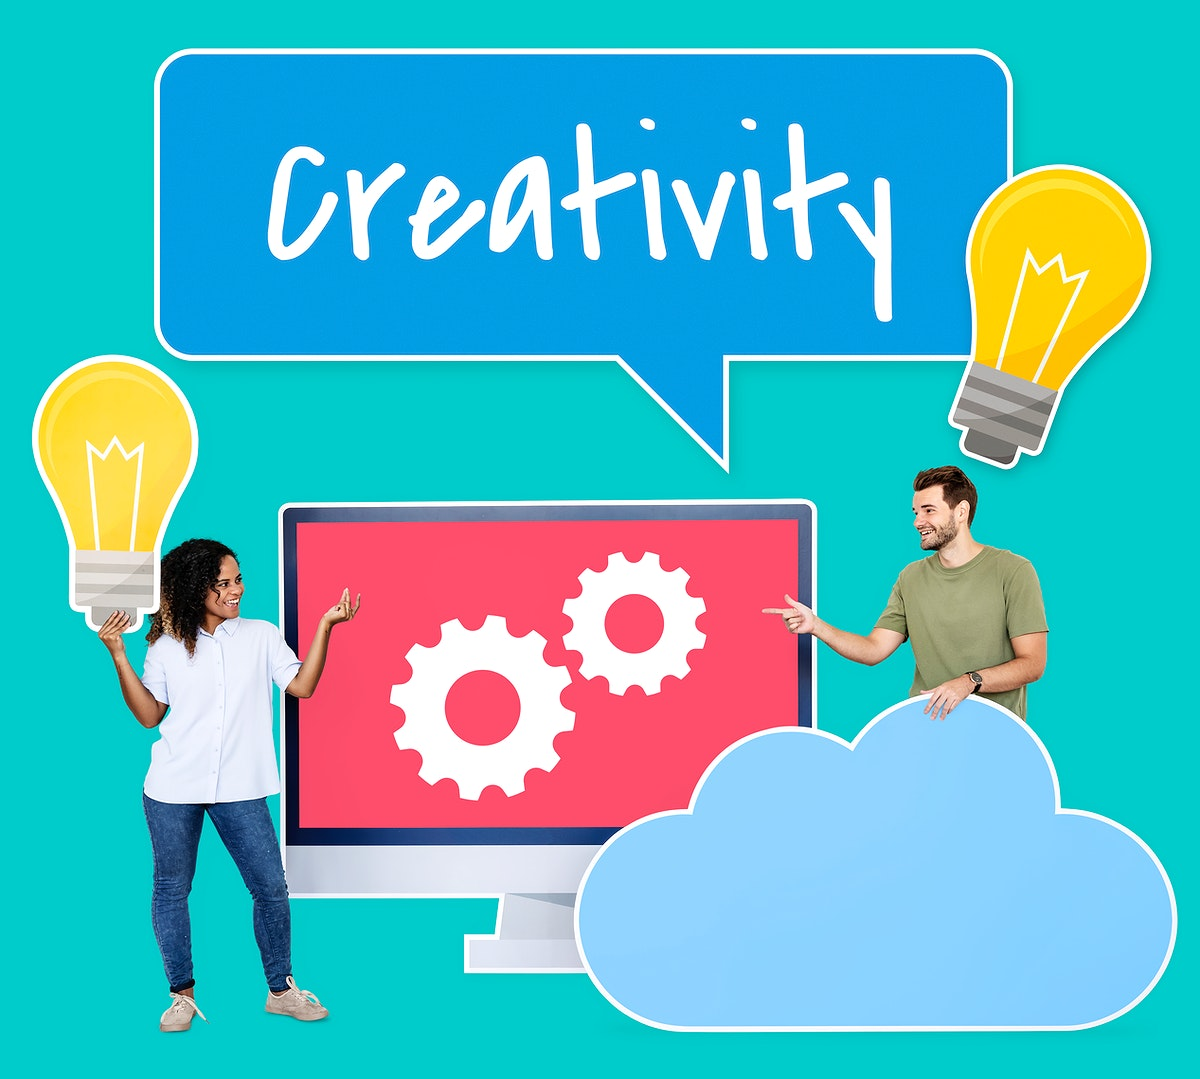 People holding creativity and ideas icons